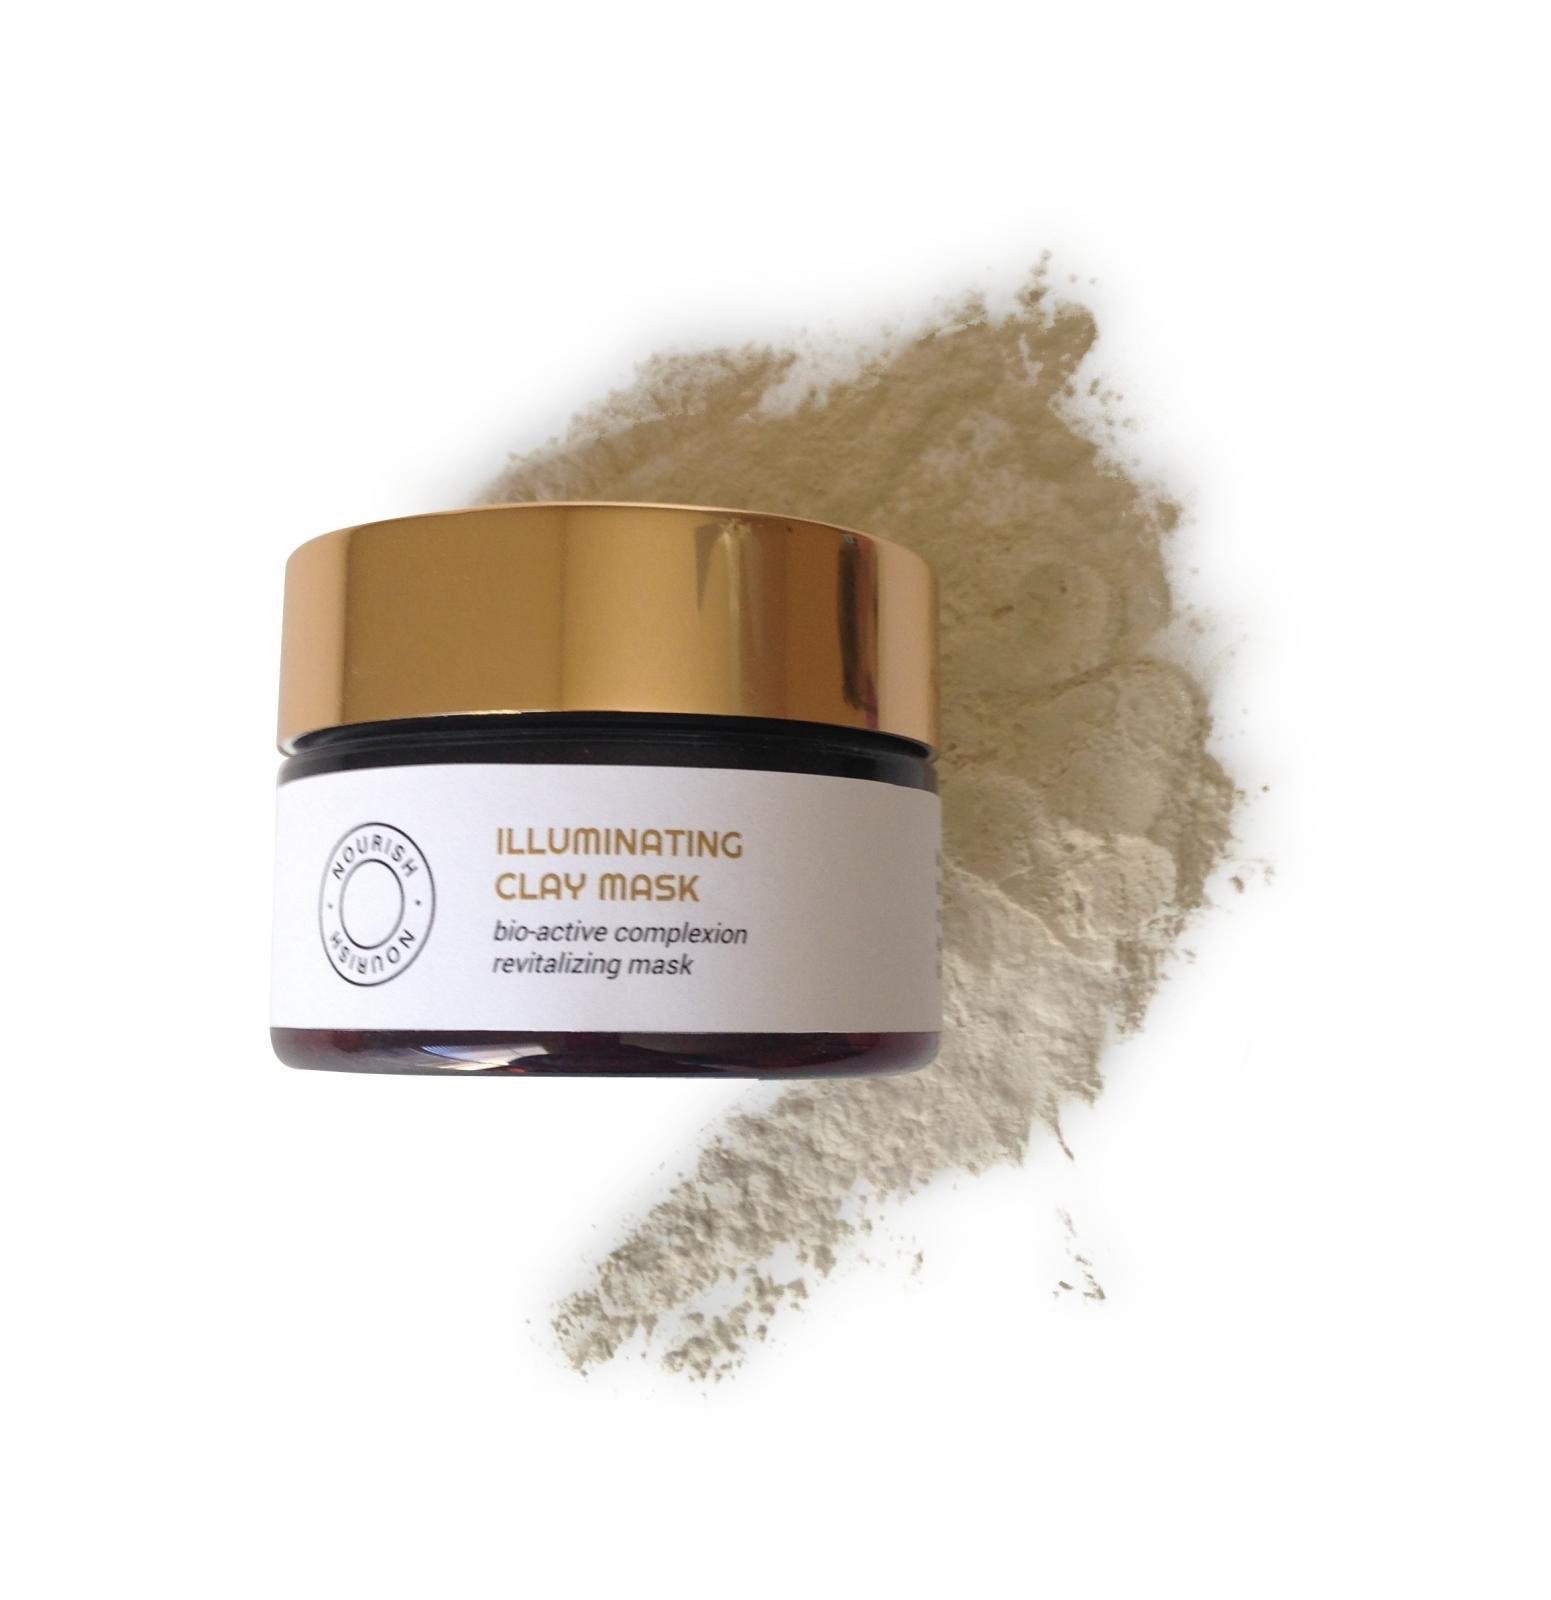 Illuminating Clay Mask